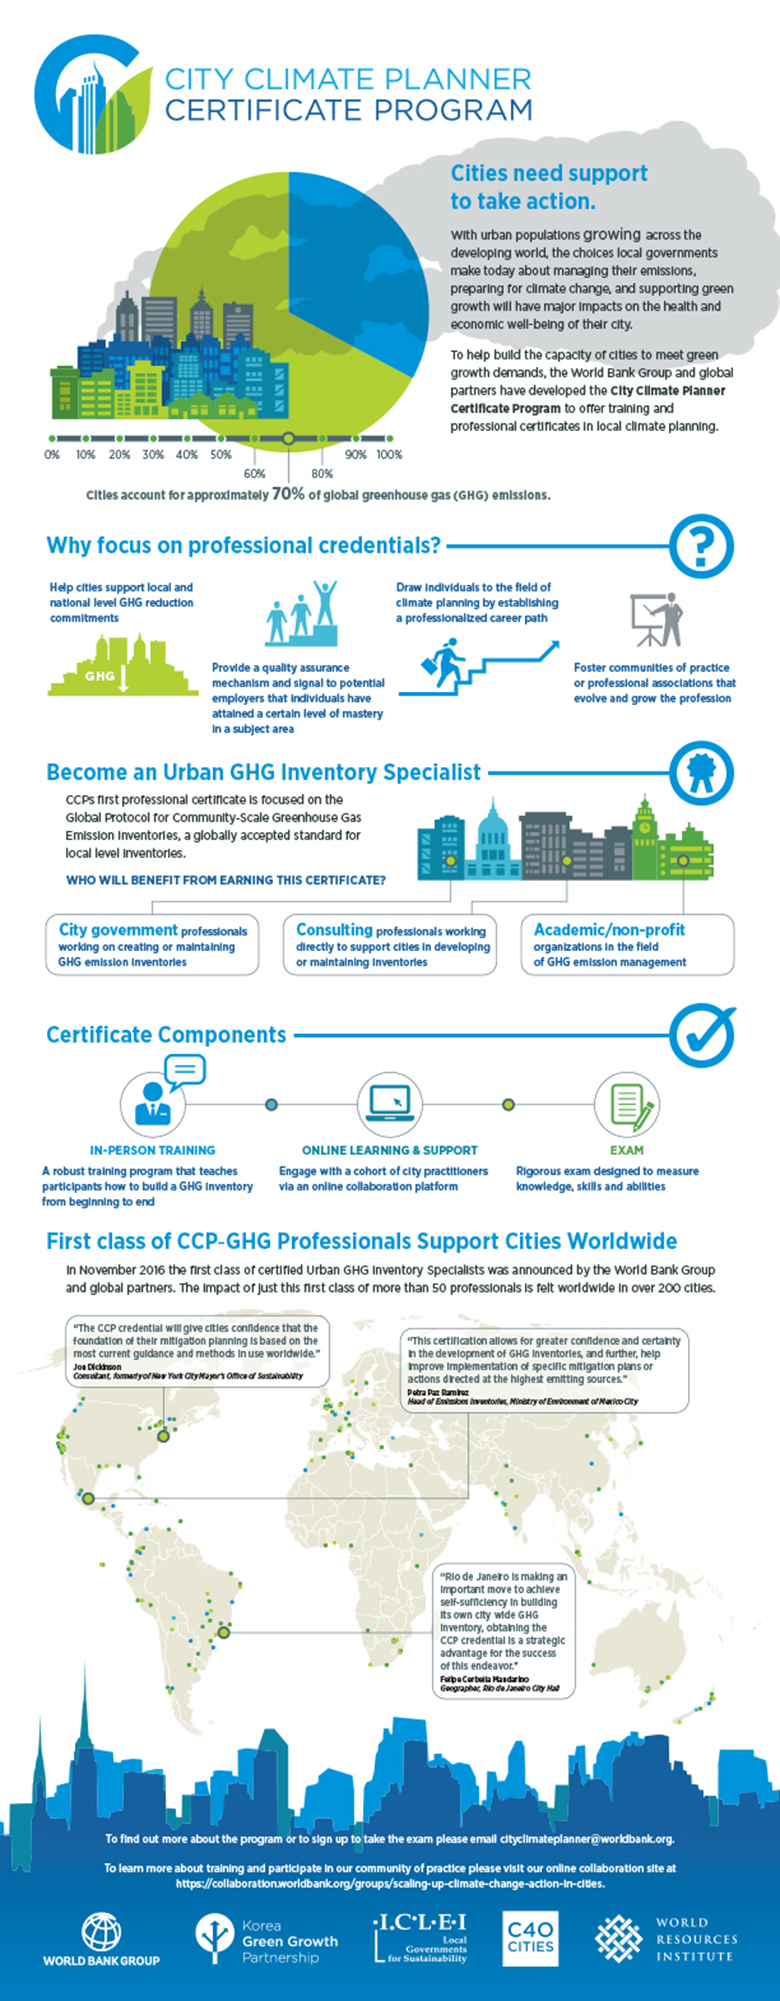 City climate planner certificate program standard for developing local inventories is at the core of this certificate the box below outlines the basic components of the program 1betcityfo Image collections